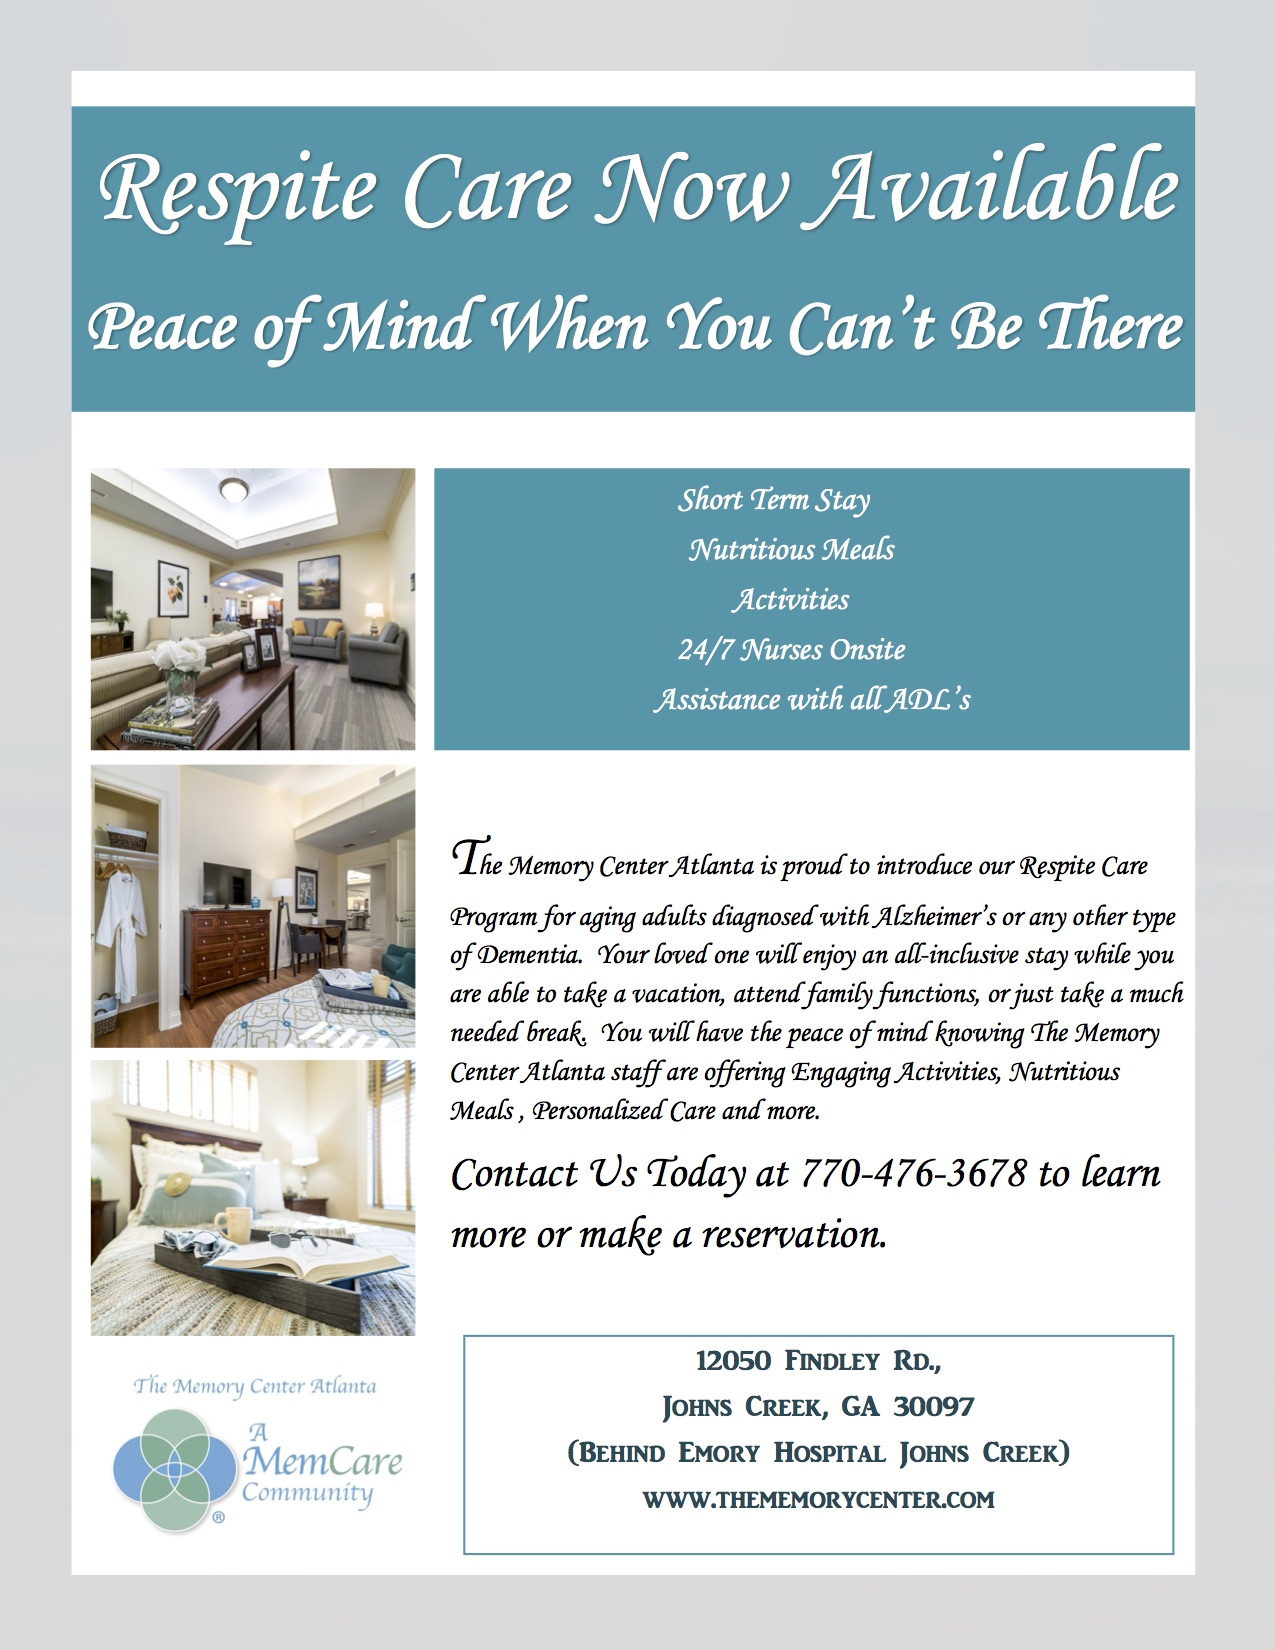 respite care for alzheimers atlanta